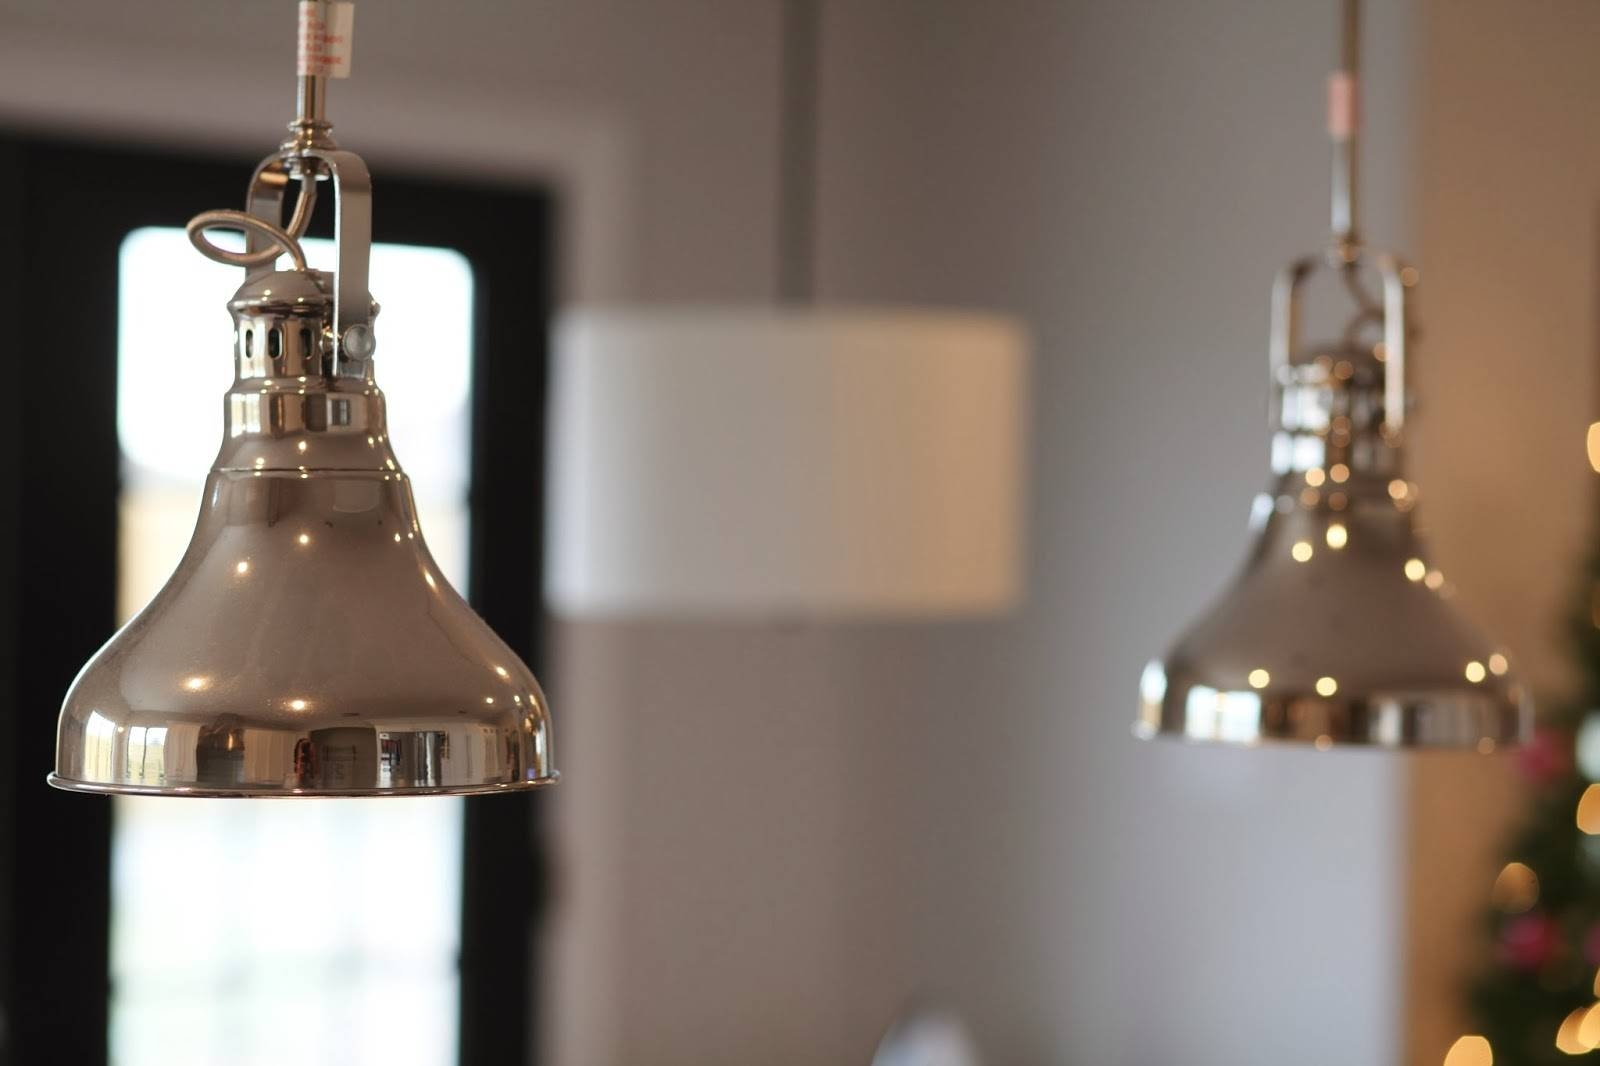 Stainless Steel Pendant Light Fixtures - Baby-Exit with Stainless Steel Kitchen Lights (Image 14 of 15)